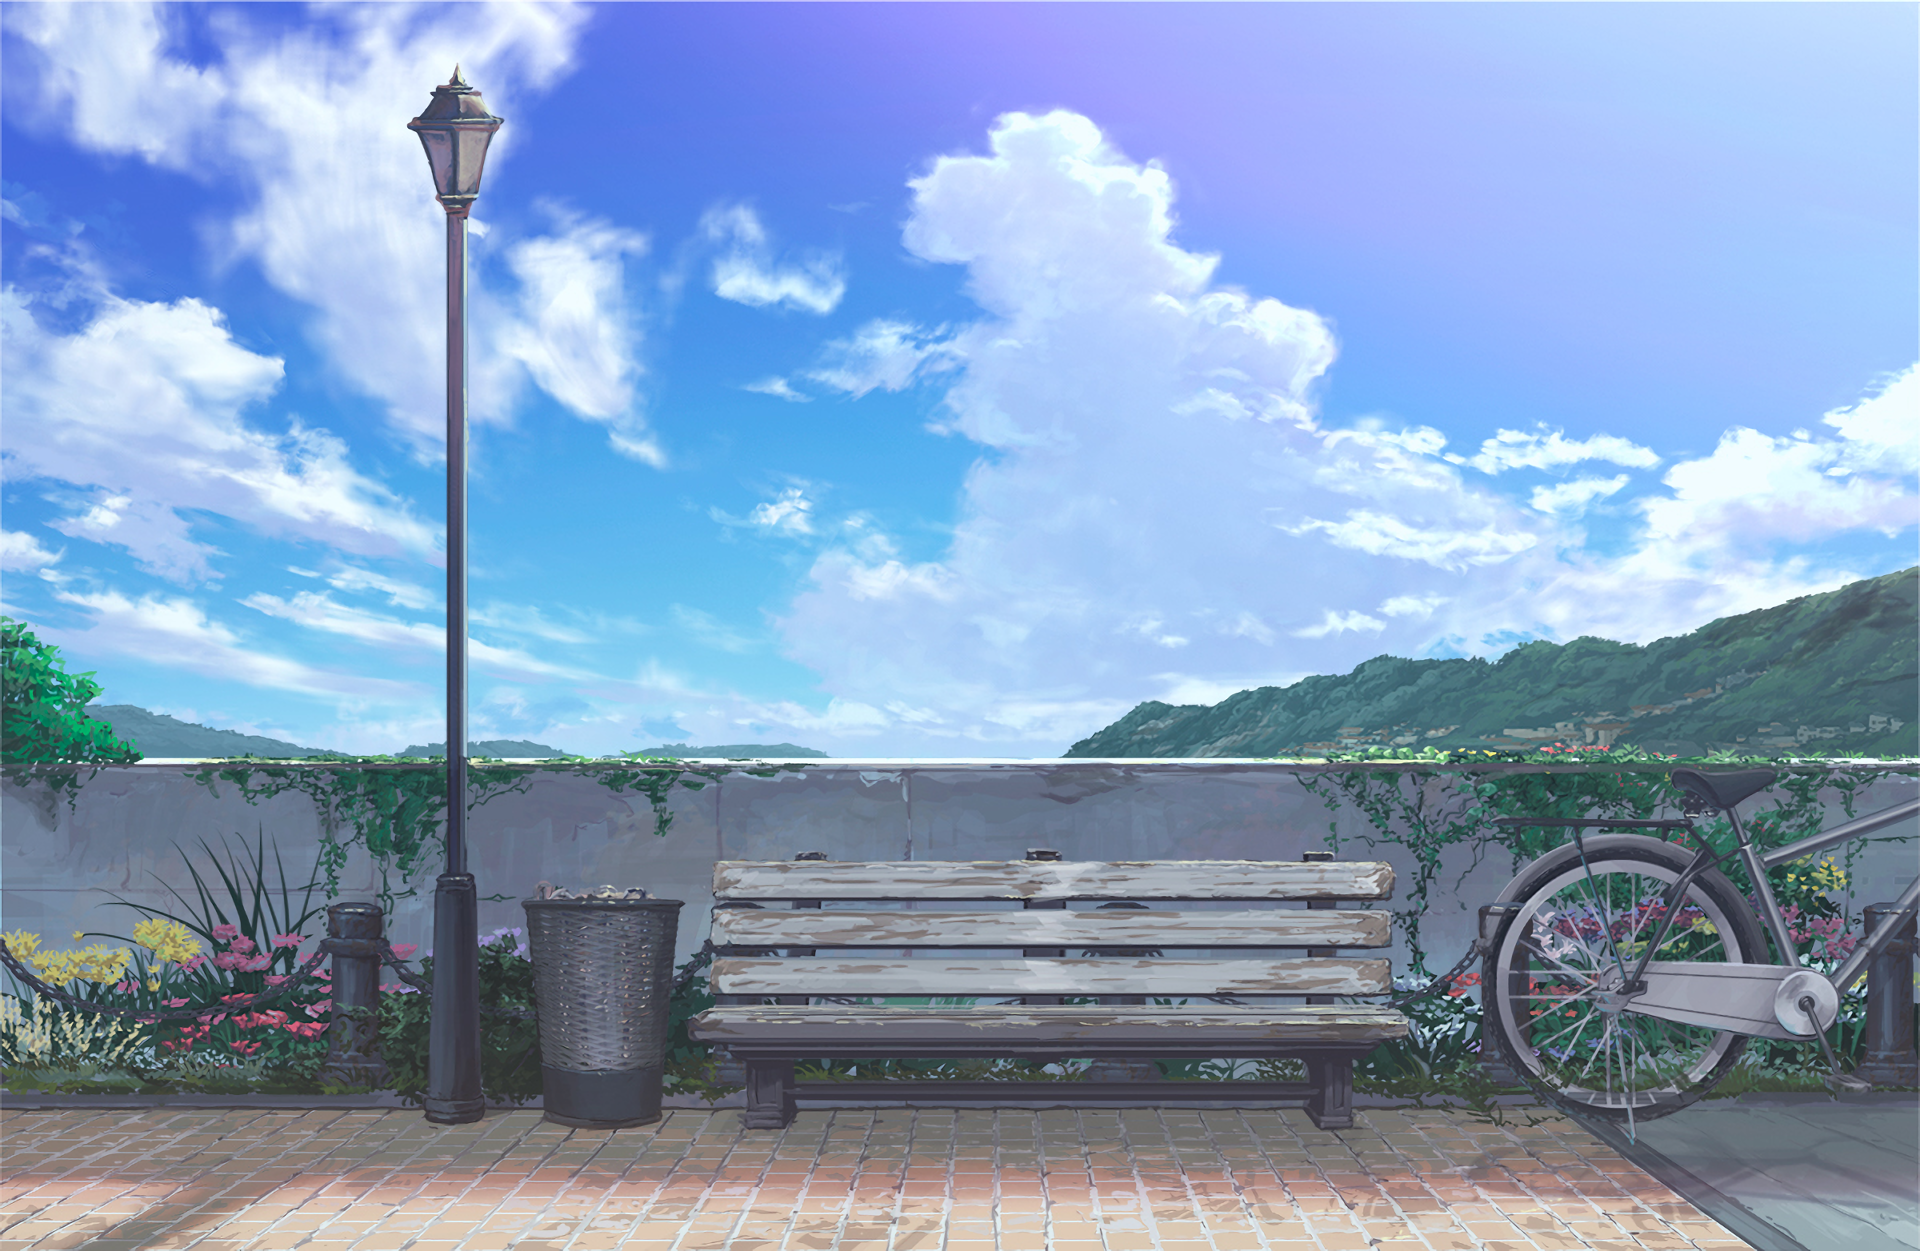 Wallpaper Abyss Anime Scenery Anime Scenery Wallpaper Anime Background